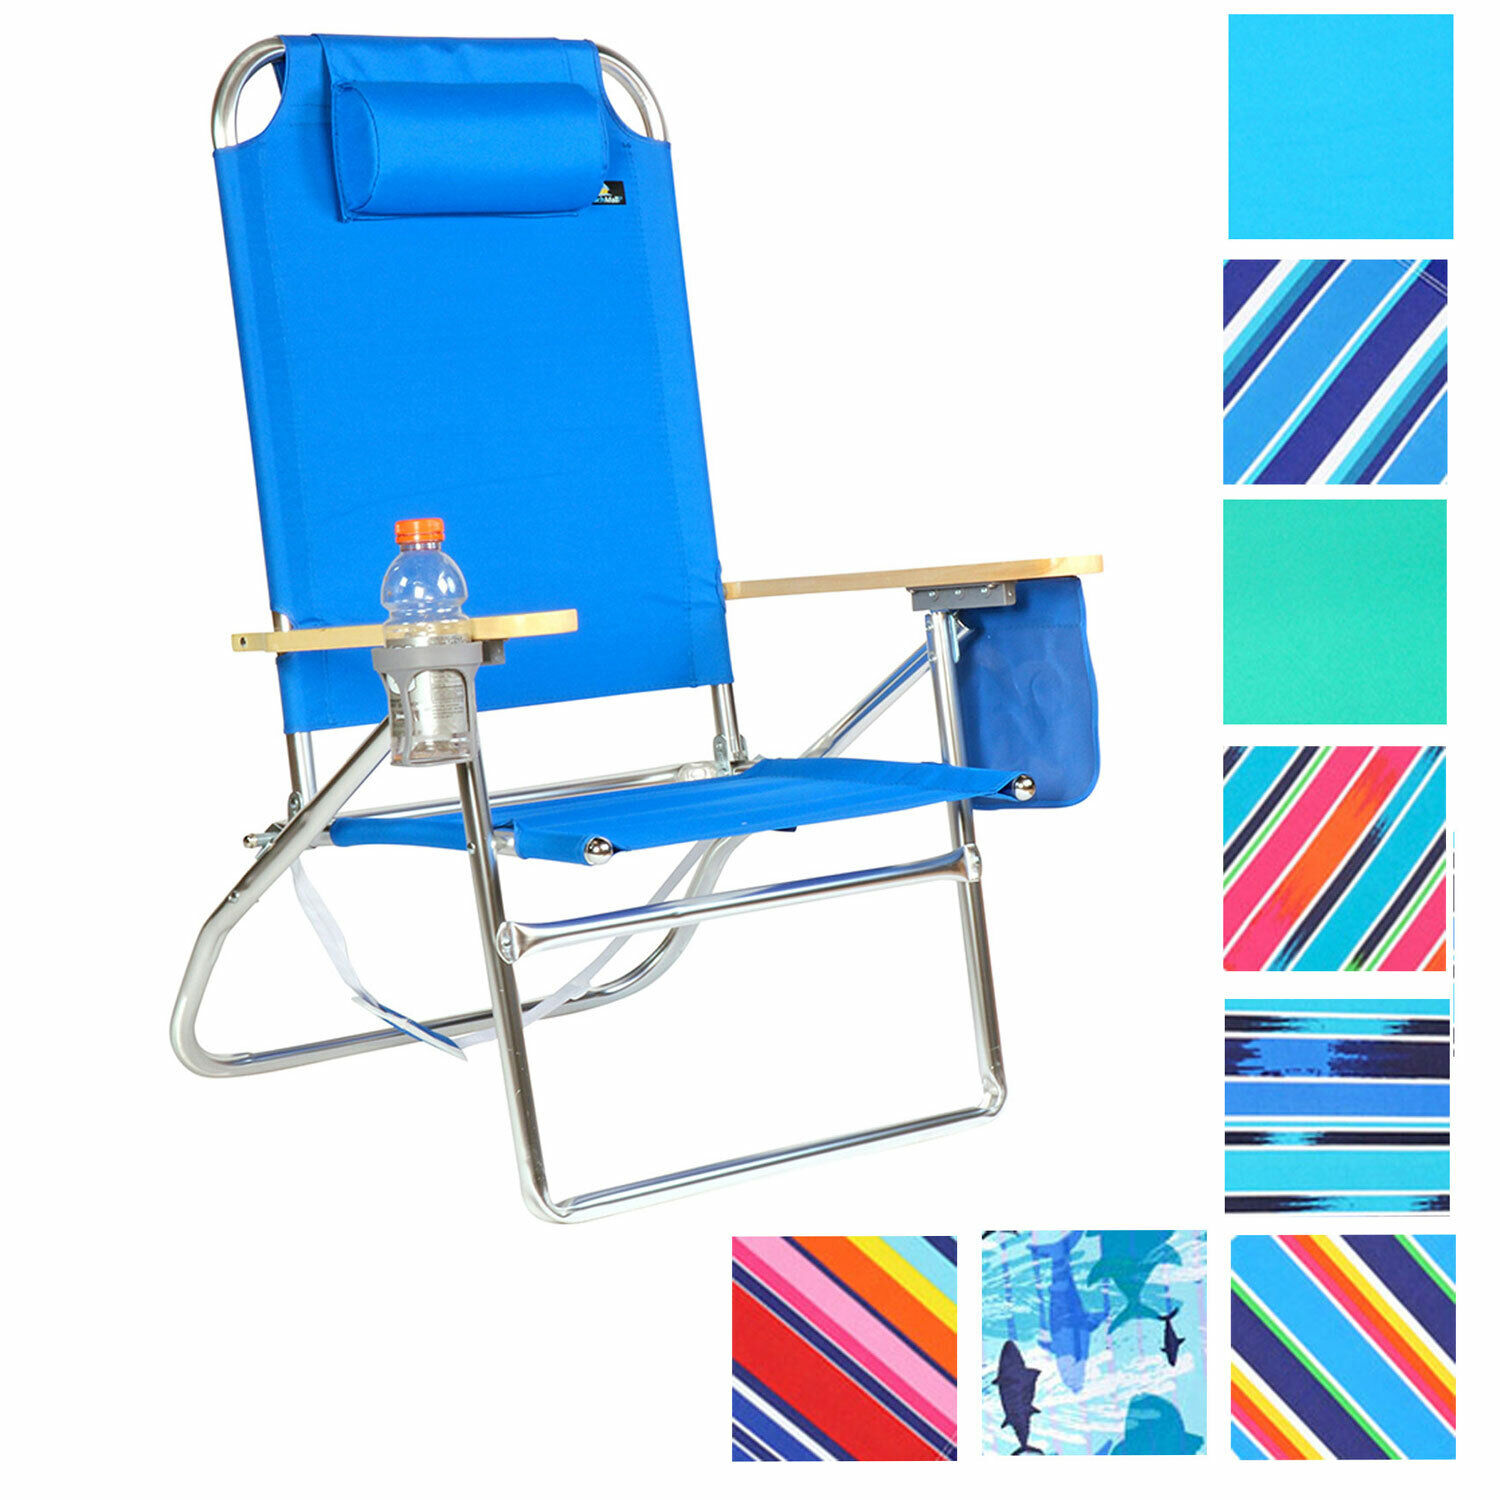 Best Beach Chair Extra Large High Seat Heavy Duty 4 Position Beach Chair W Drink Holder Wcp450 450